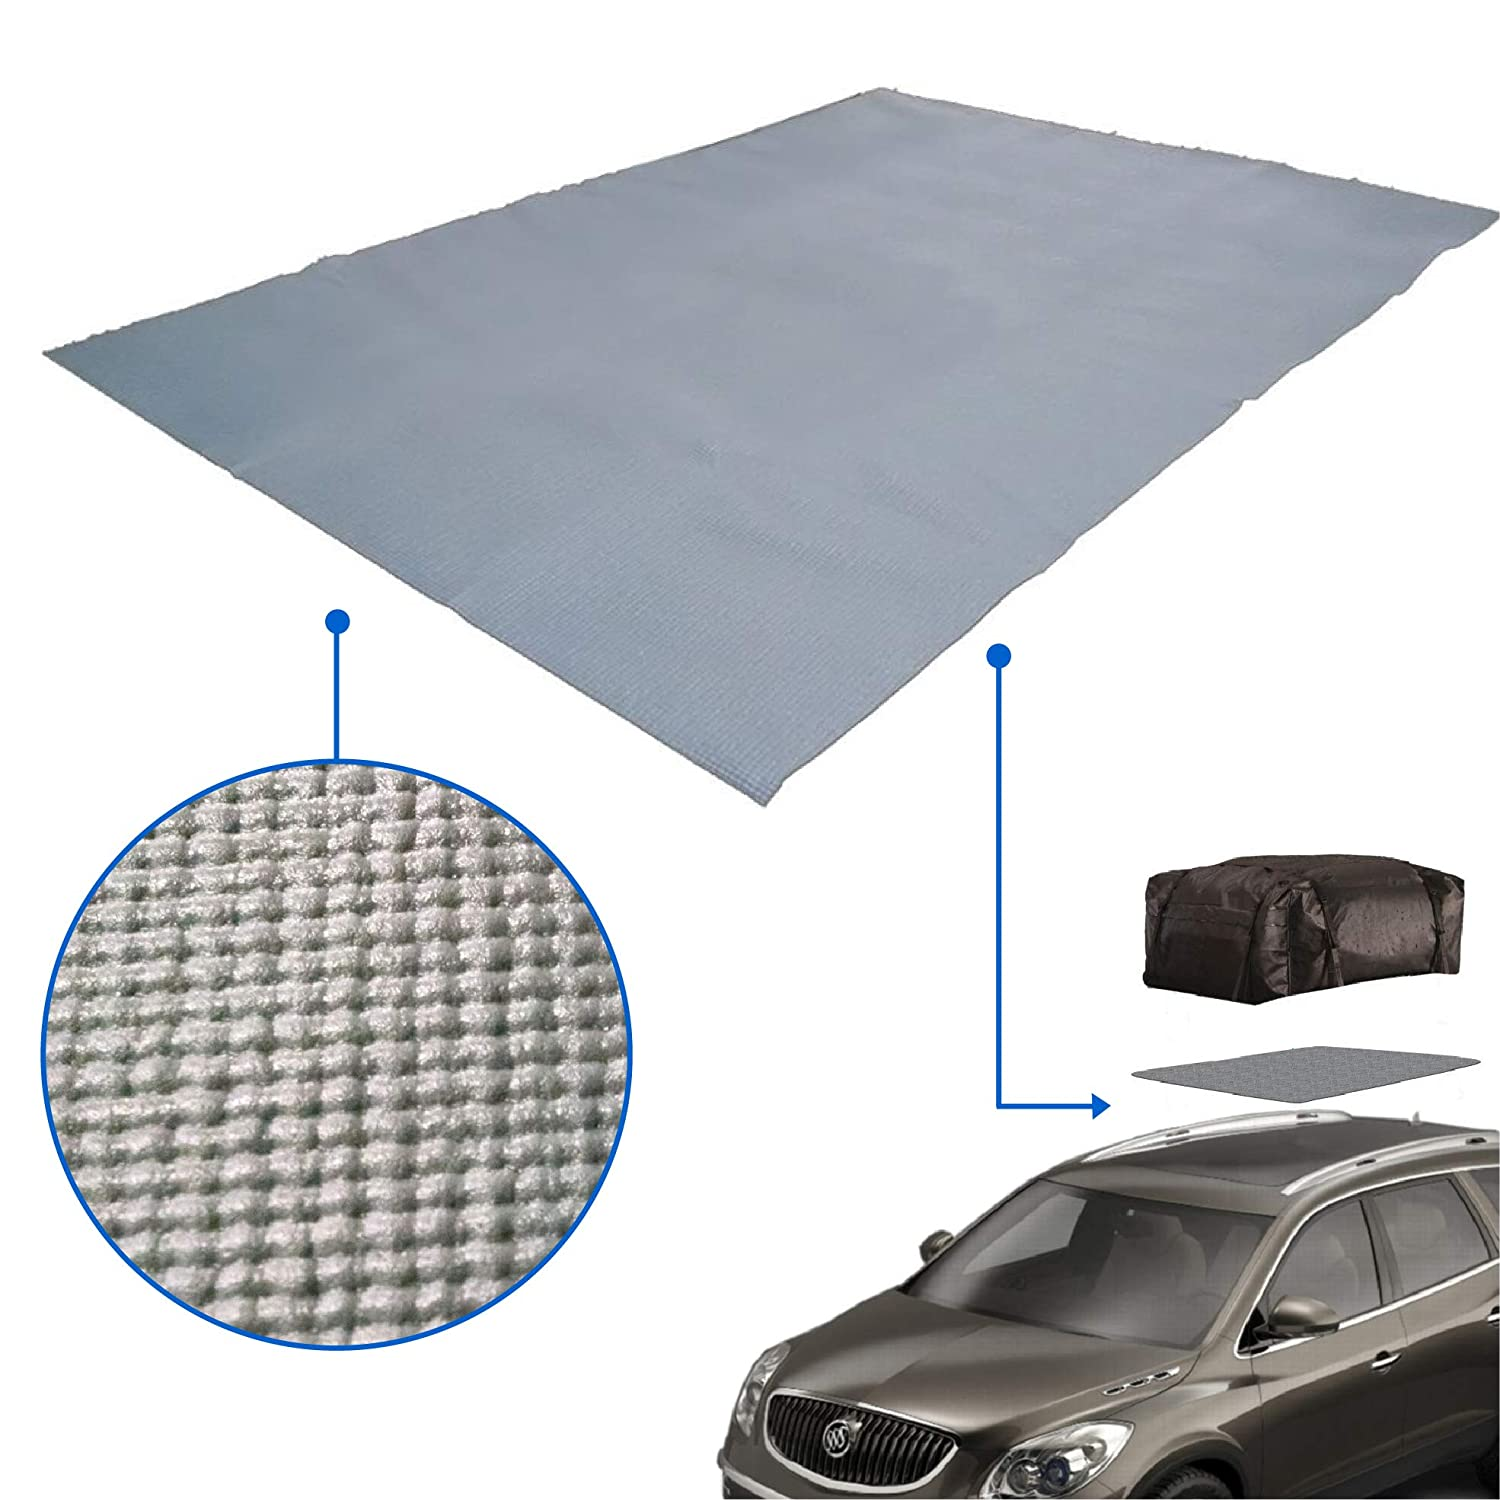 EasyGoProducts egp-aut-001 Cargo Bag Mat Padded to Protect car Storage and Roof Racks